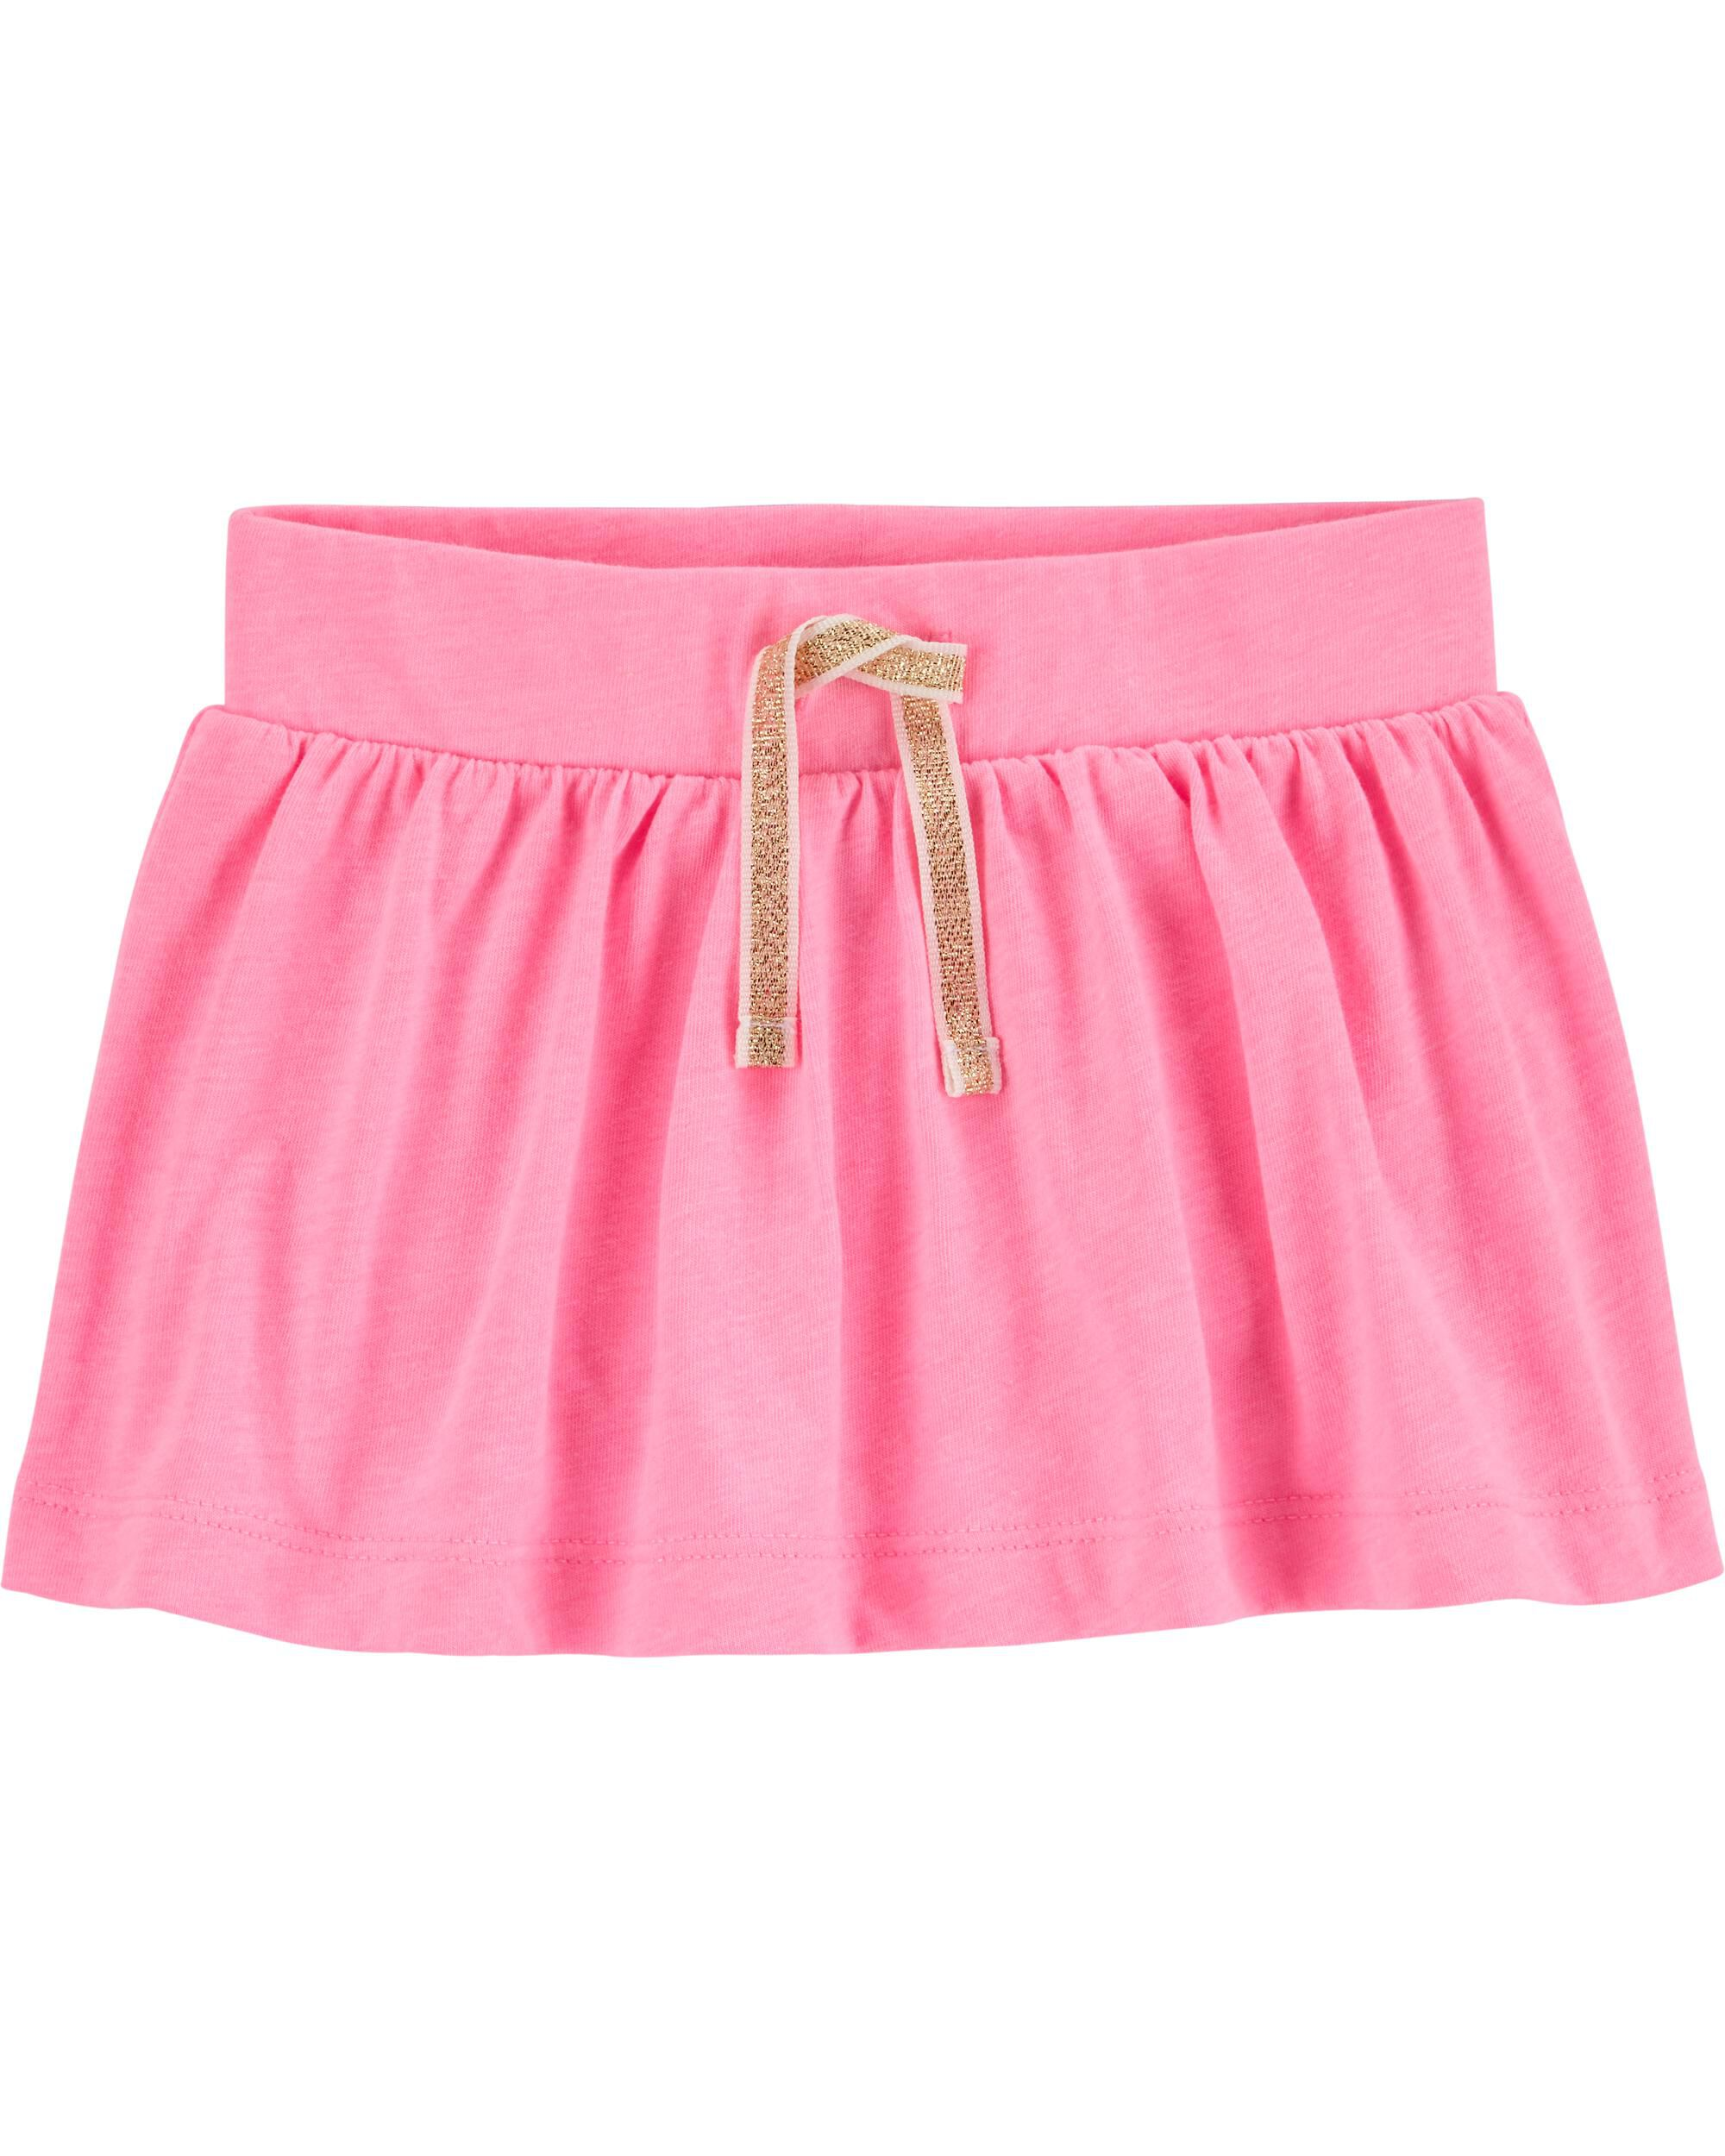 OshKosh BGosh Baby and Toddler Girls Pull-on Cotton Skort